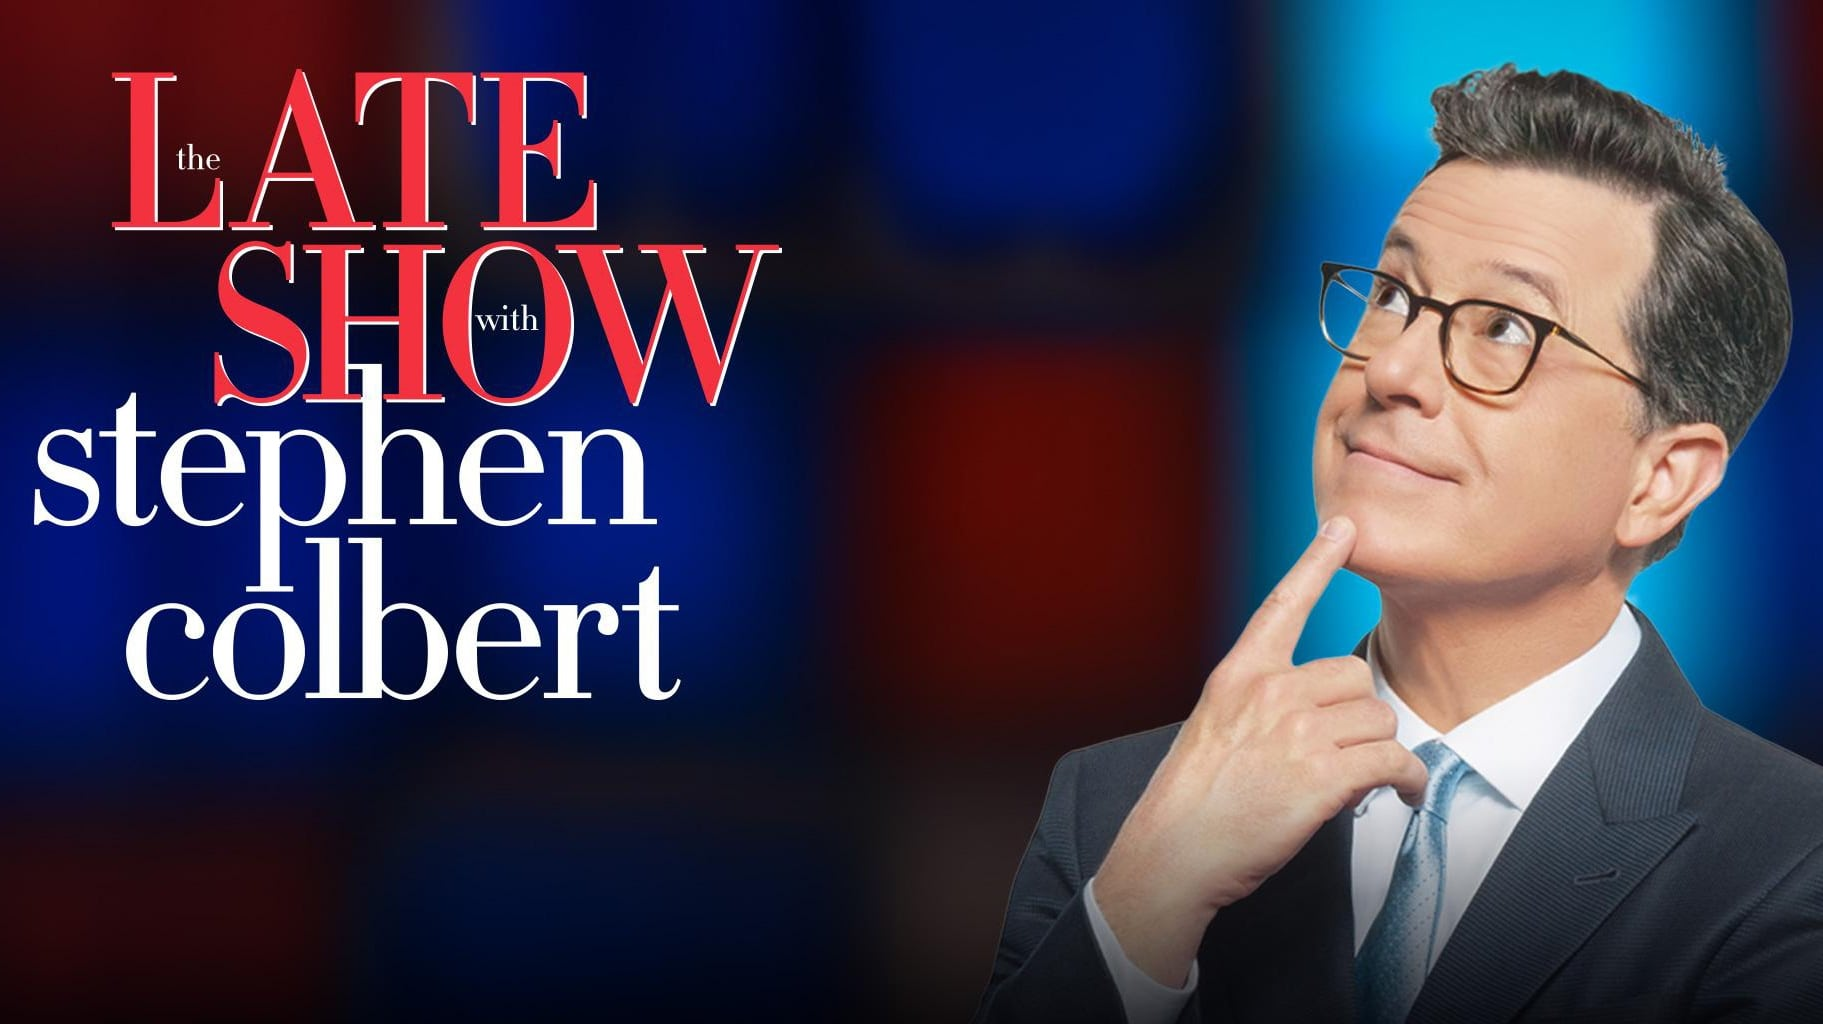 The Late Show with Stephen Colbert - Season 5